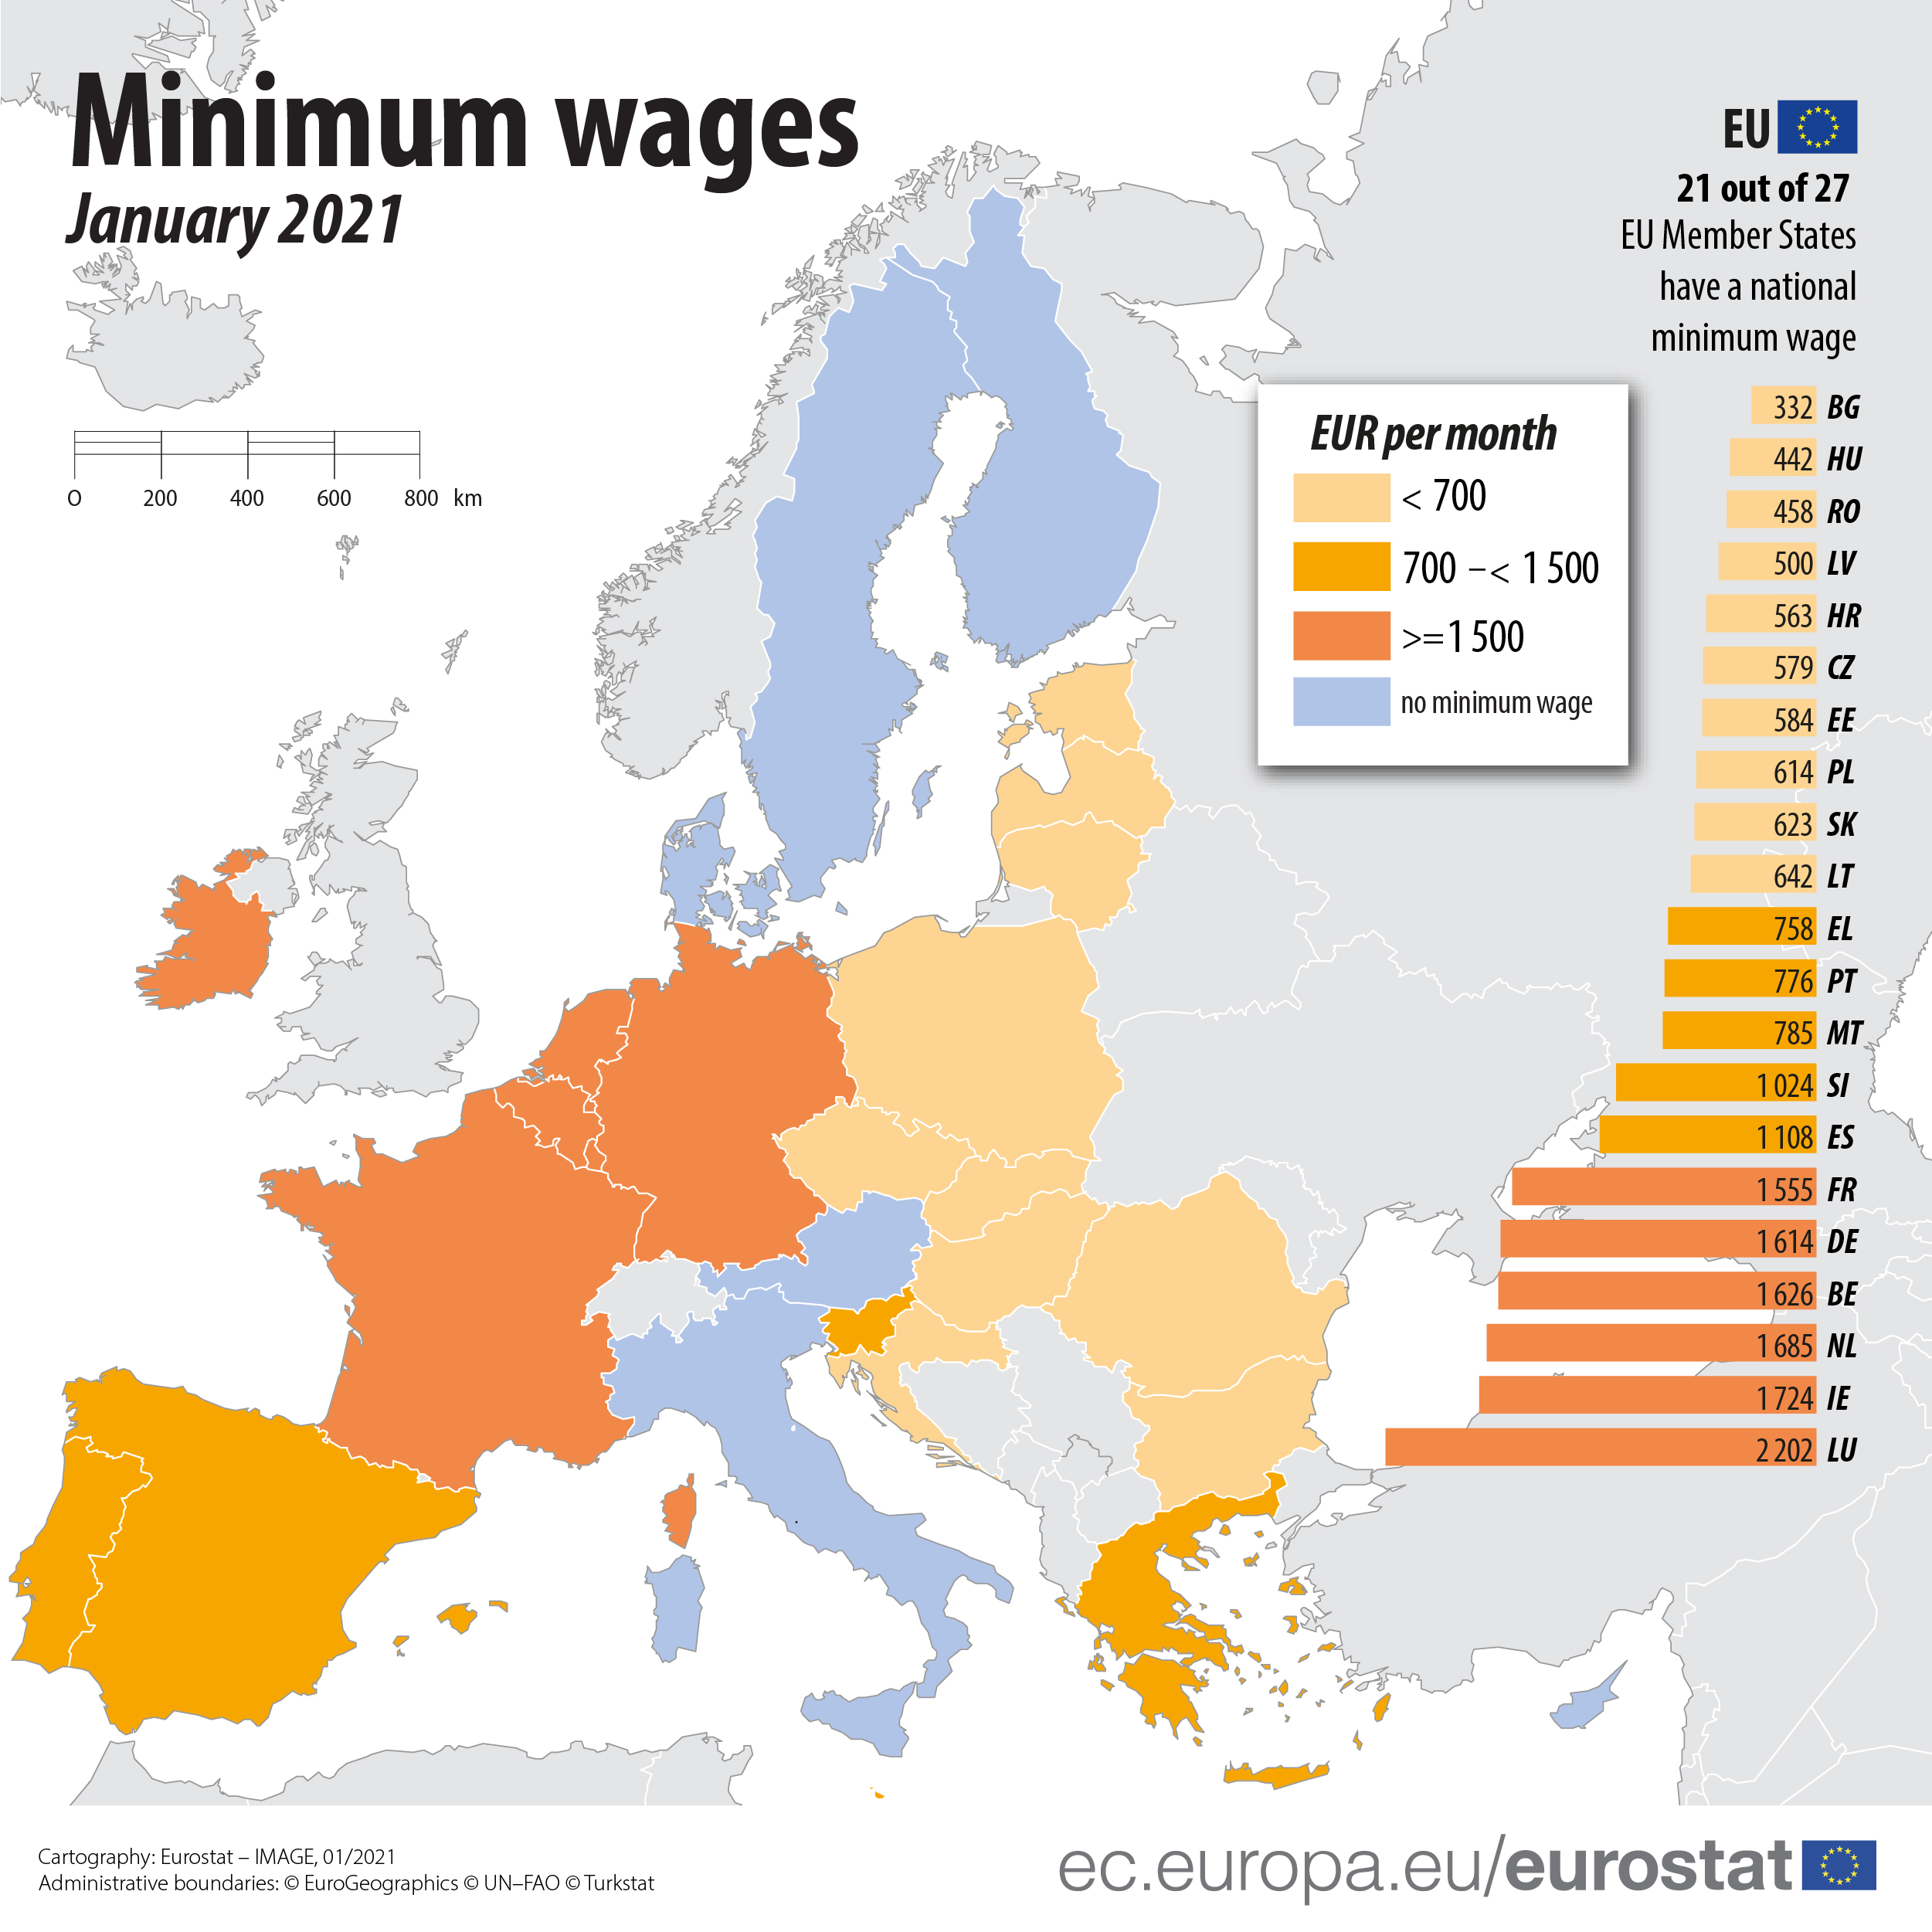 Minimum wages January 2021 map